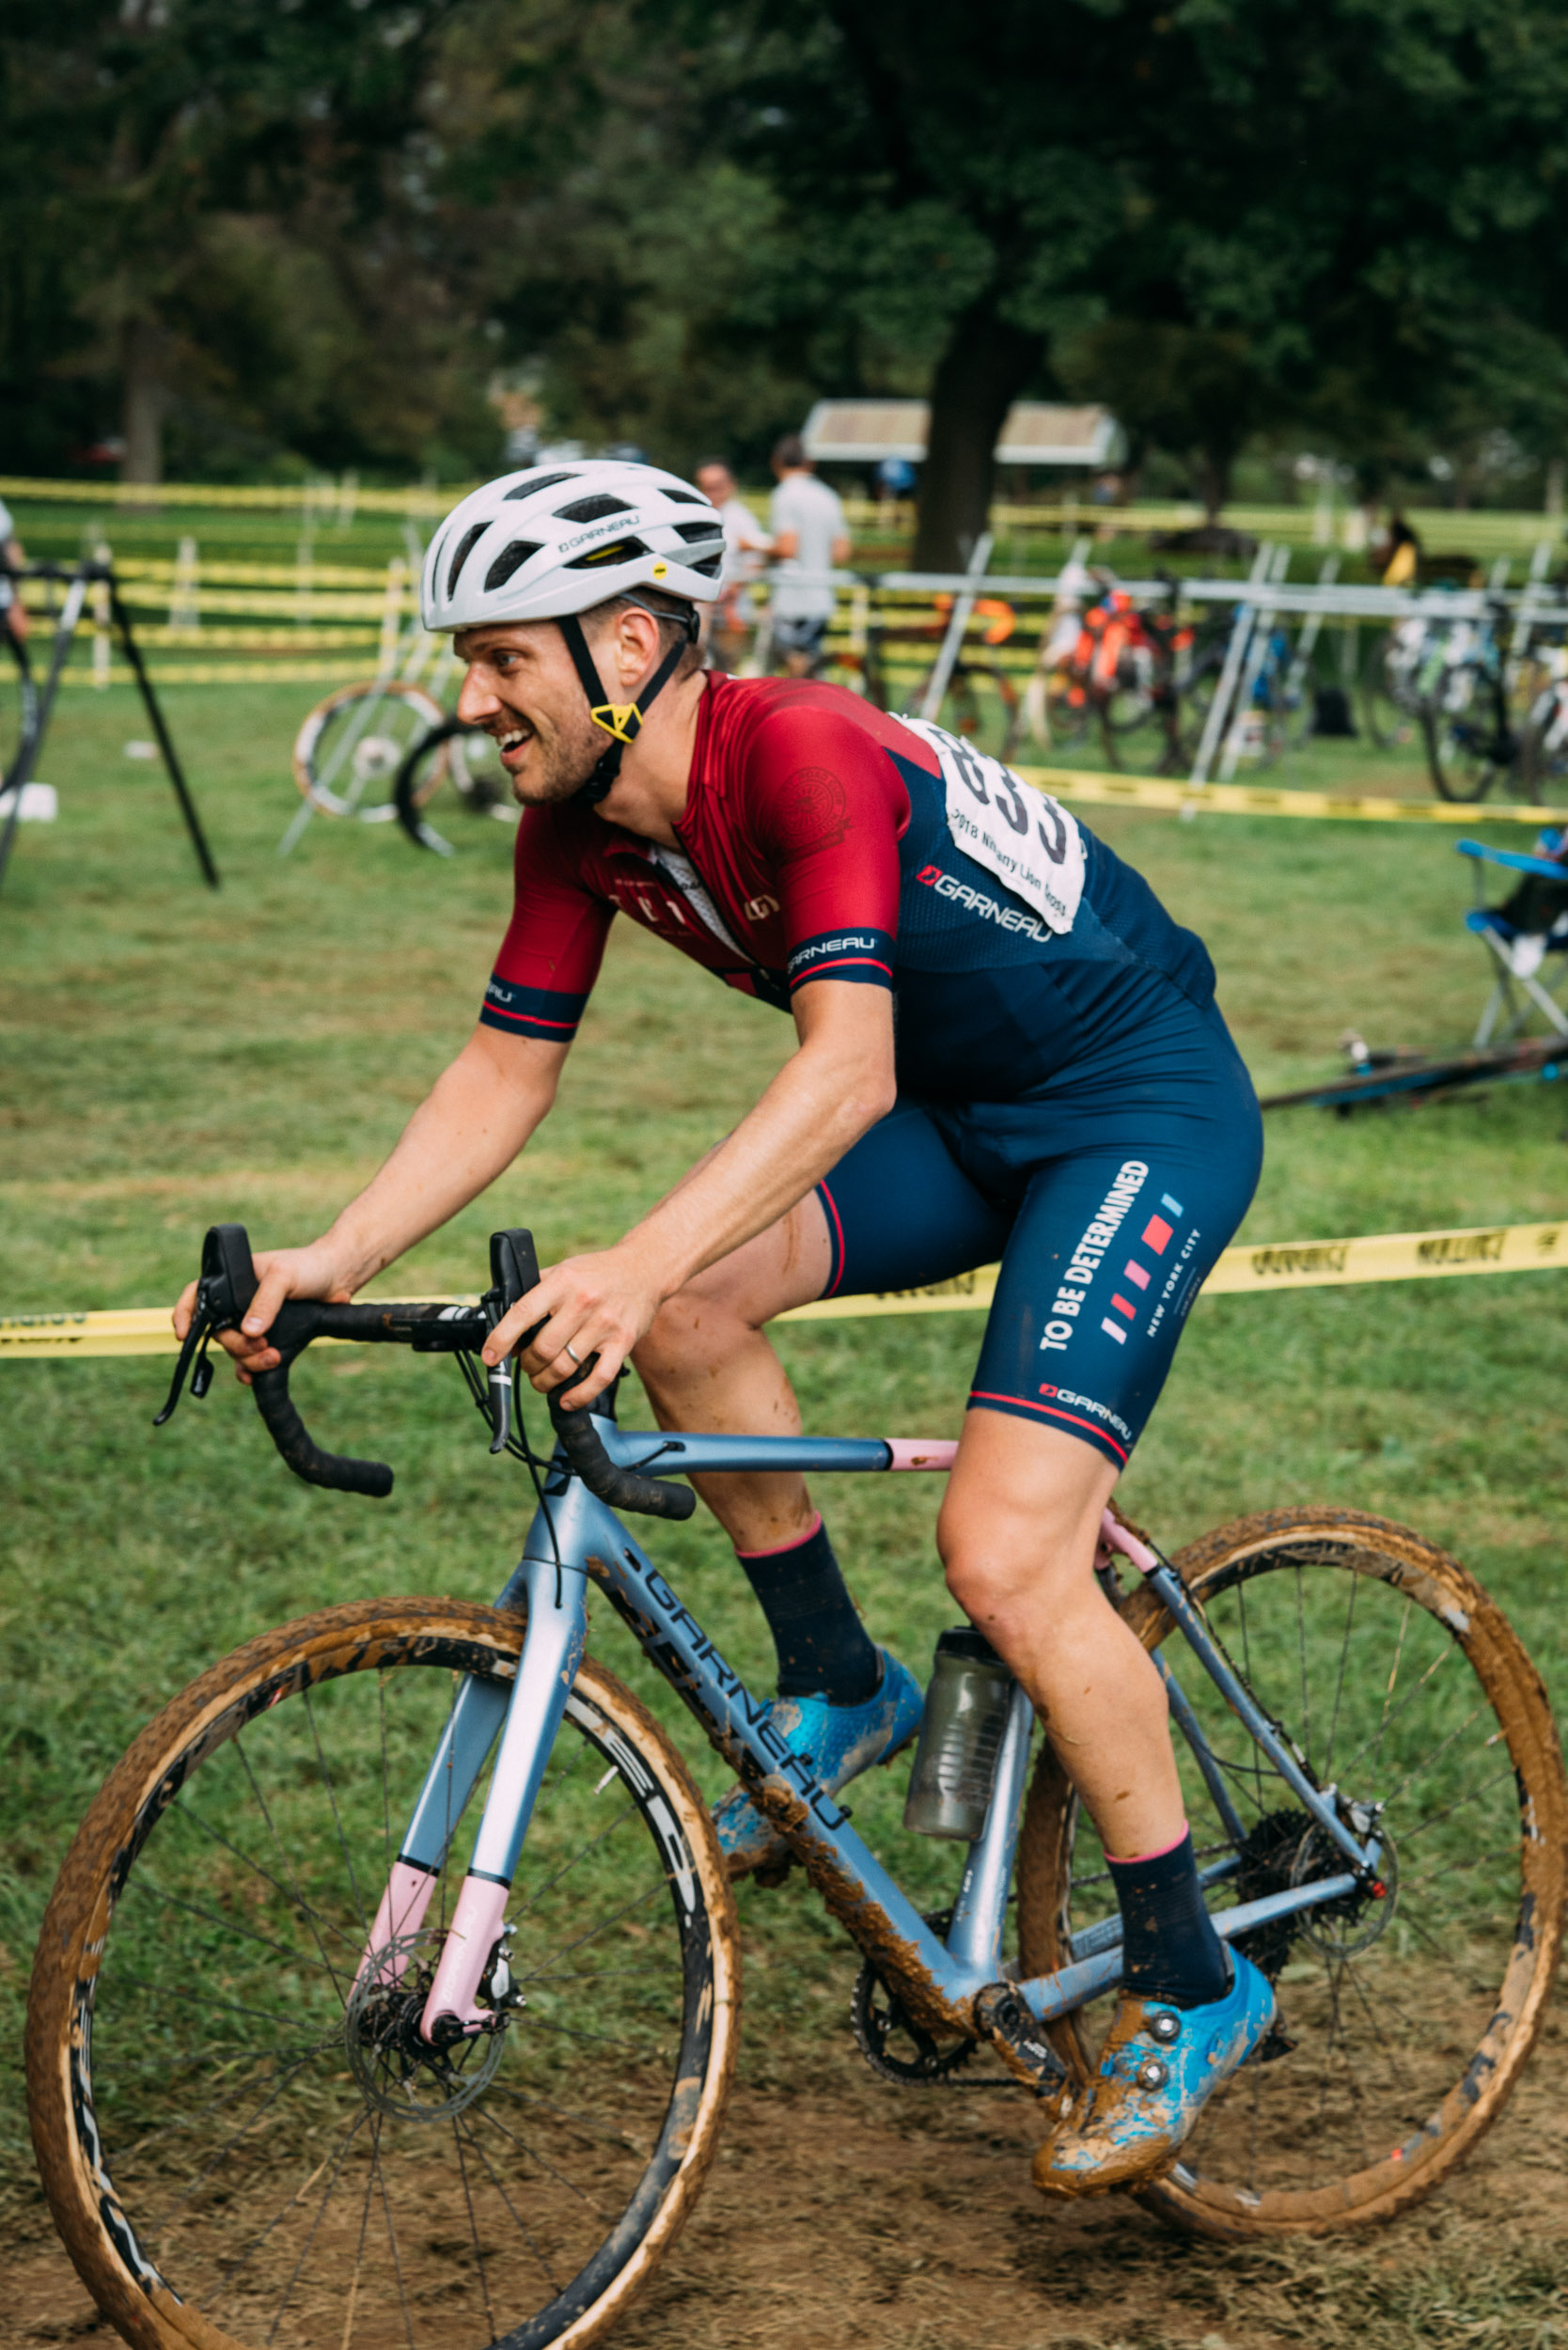 photo-rhetoric-to-be-determined-nittany-cyclocross-1200.jpg